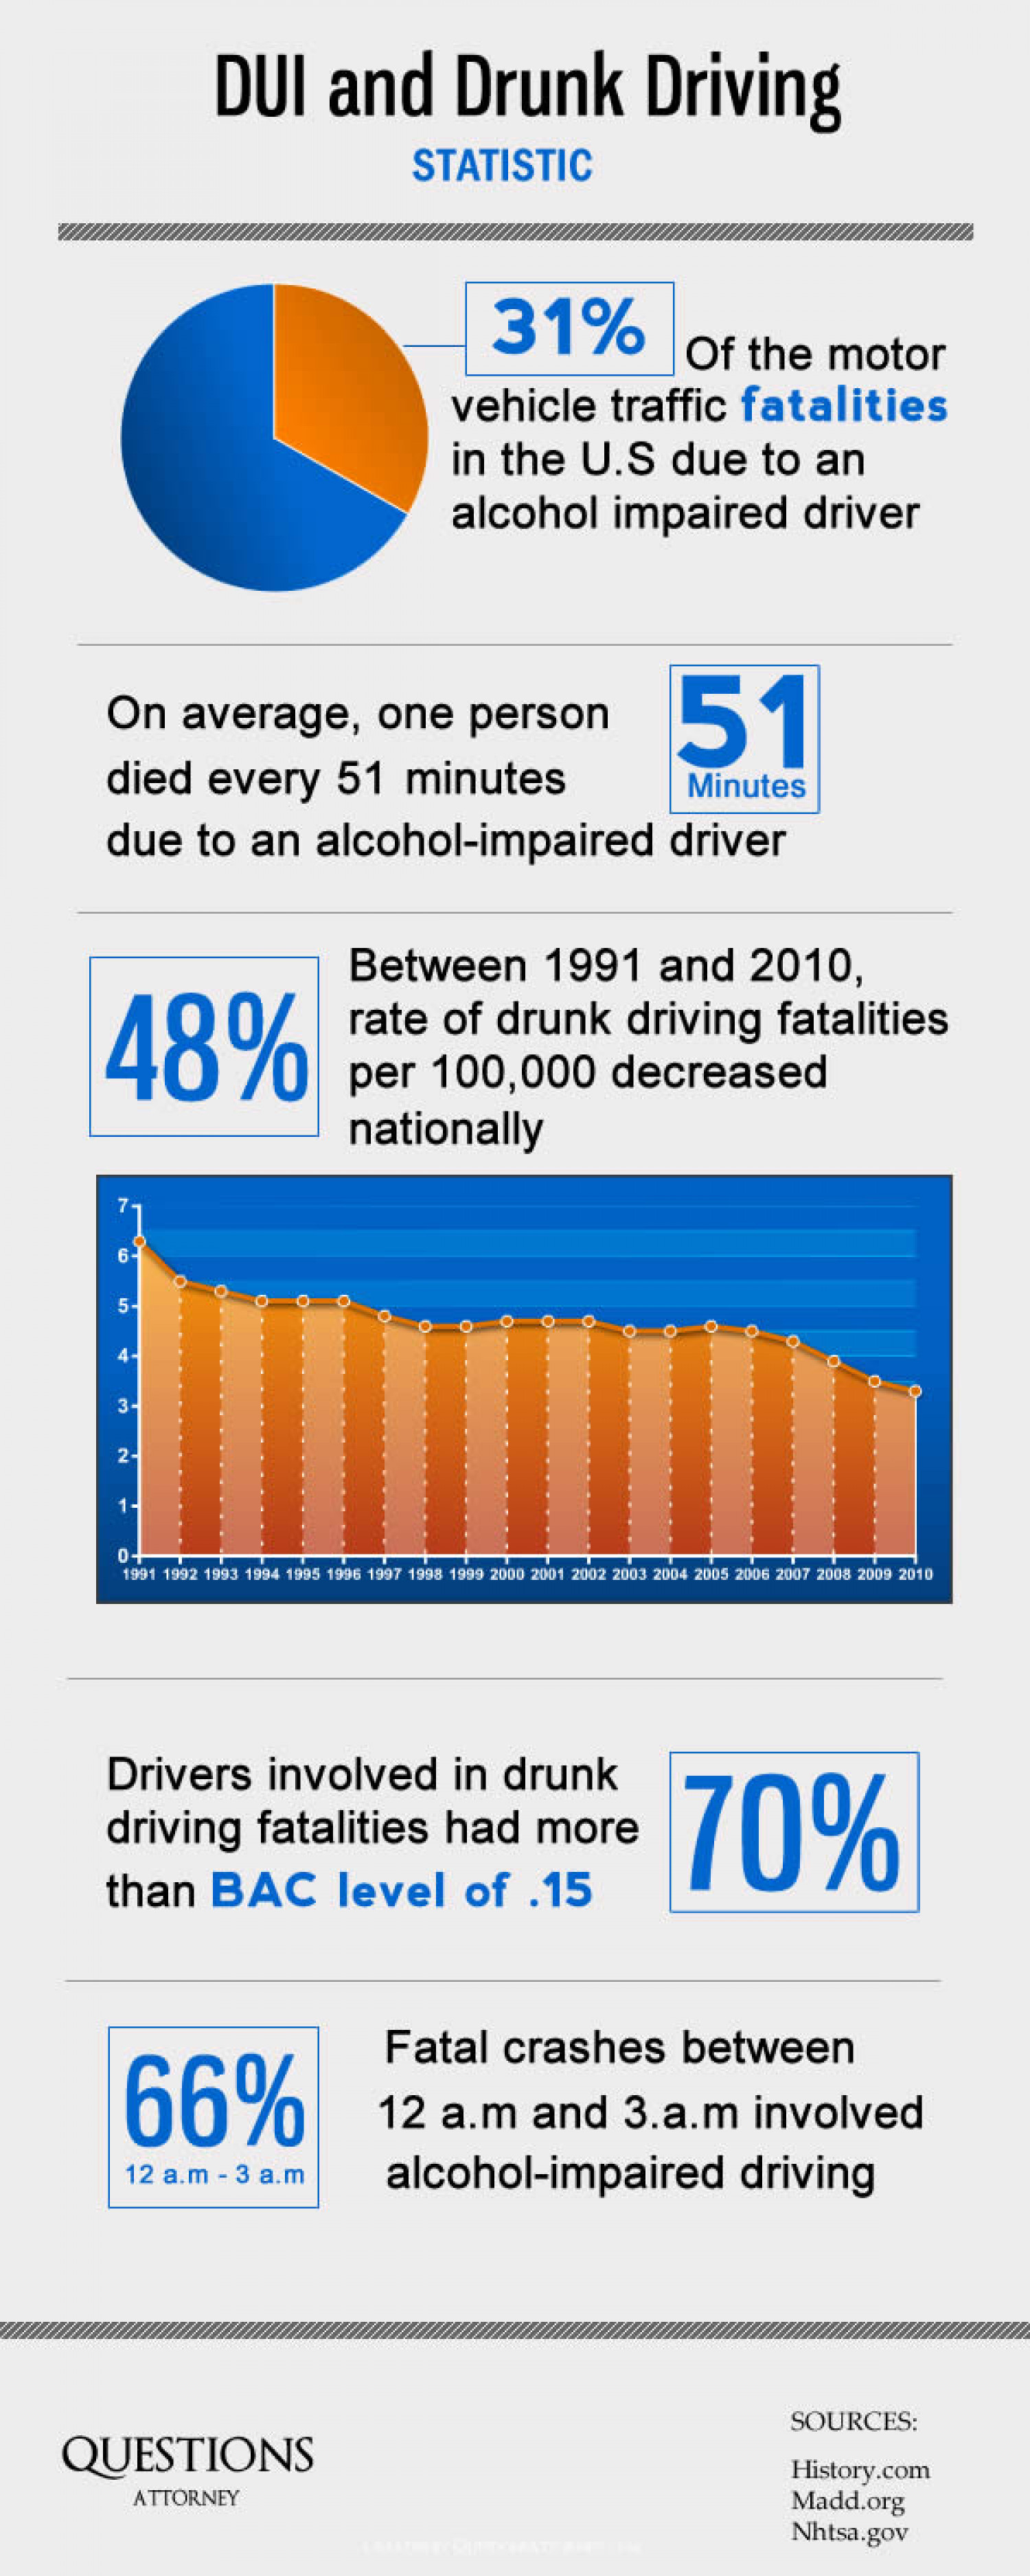 DUI and Drunk Driving Statistic Infographic